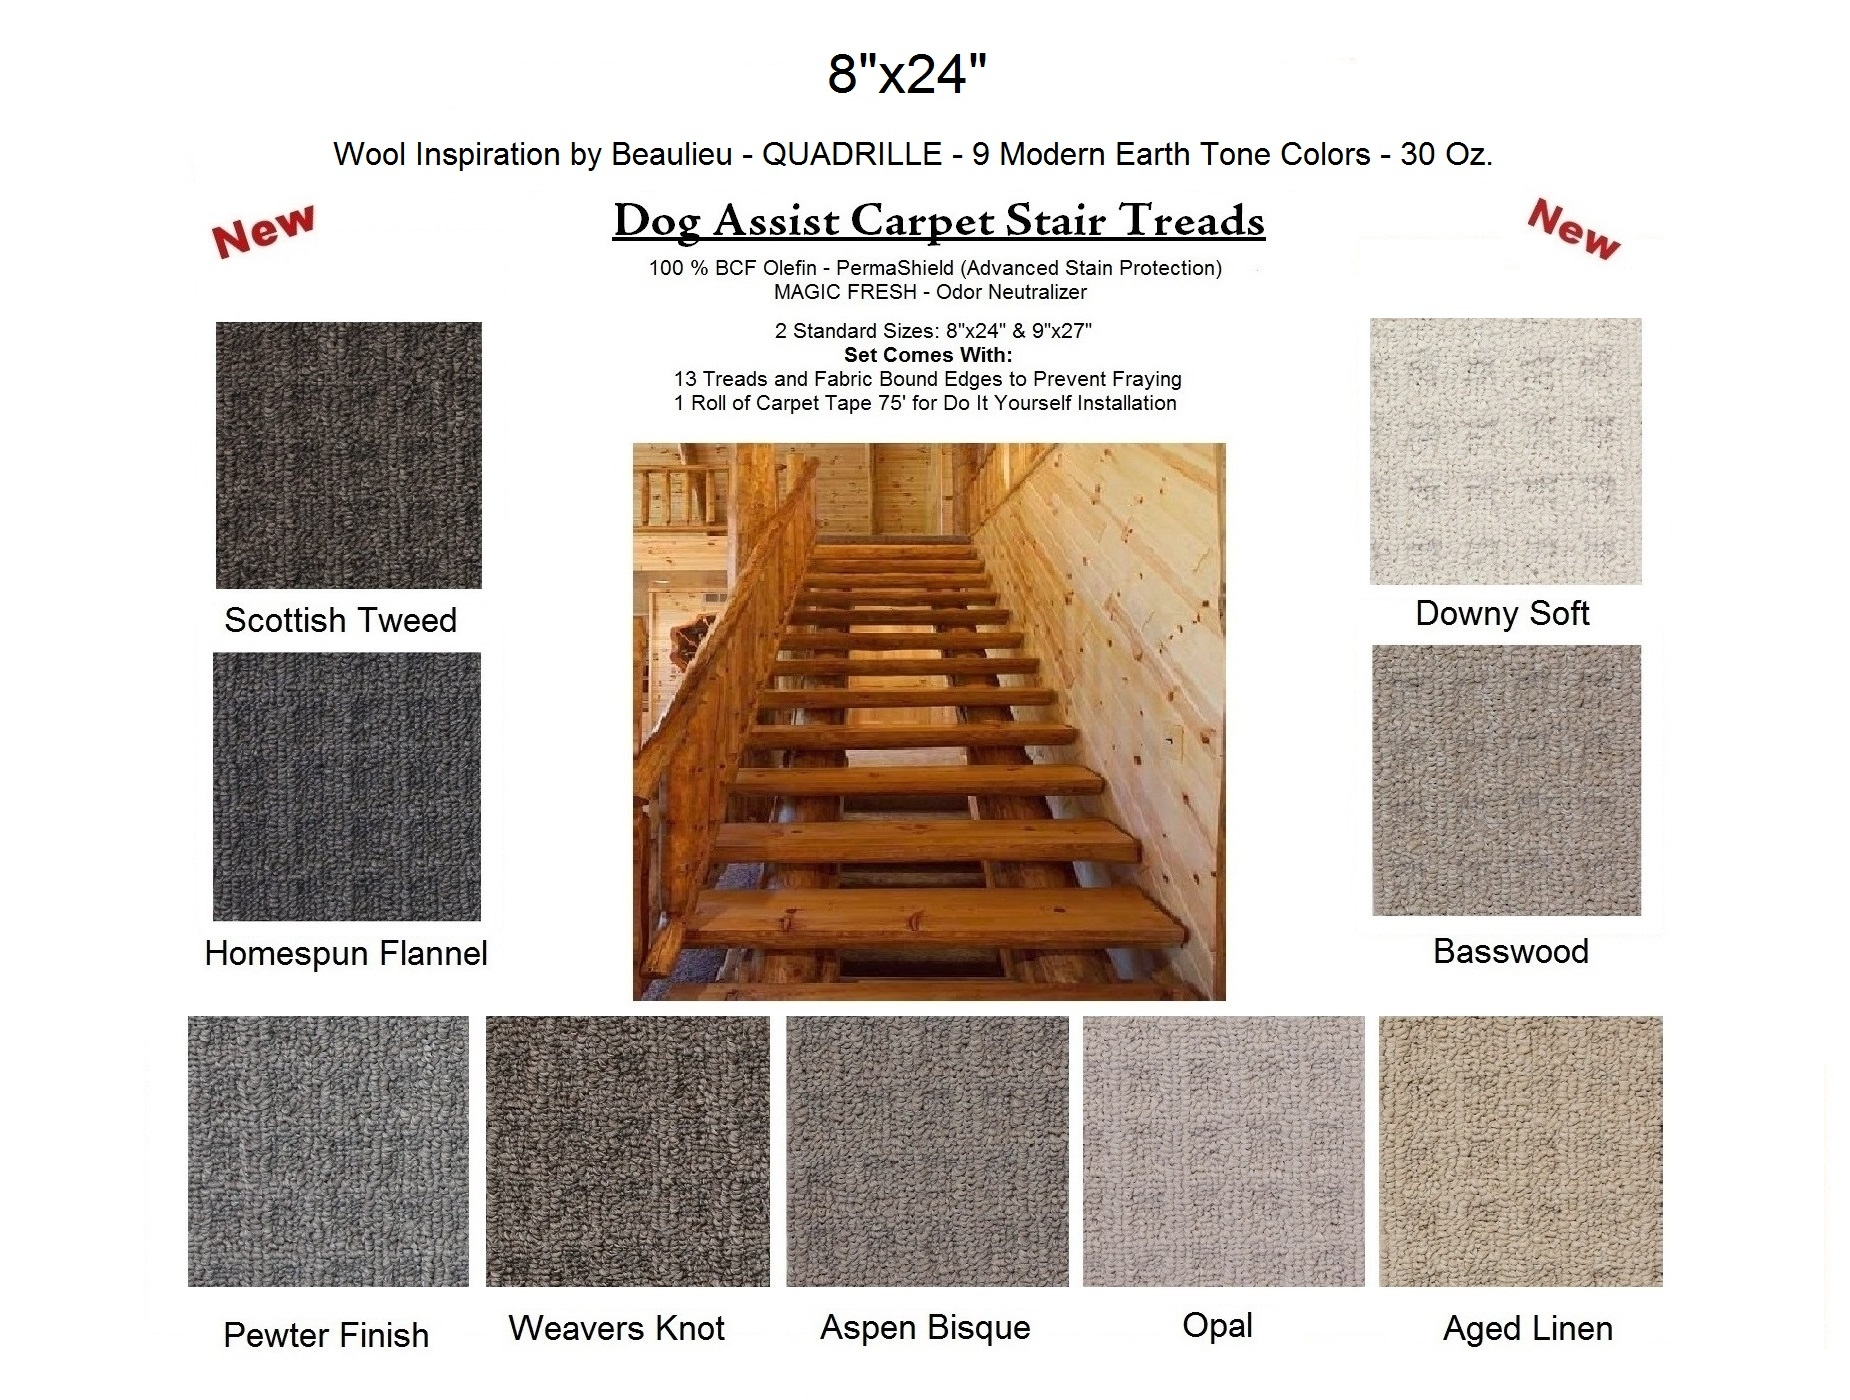 Dog Assist Carpet Stair Treads Pertaining To Stair Tread Rugs For Dogs (Image 5 of 15)